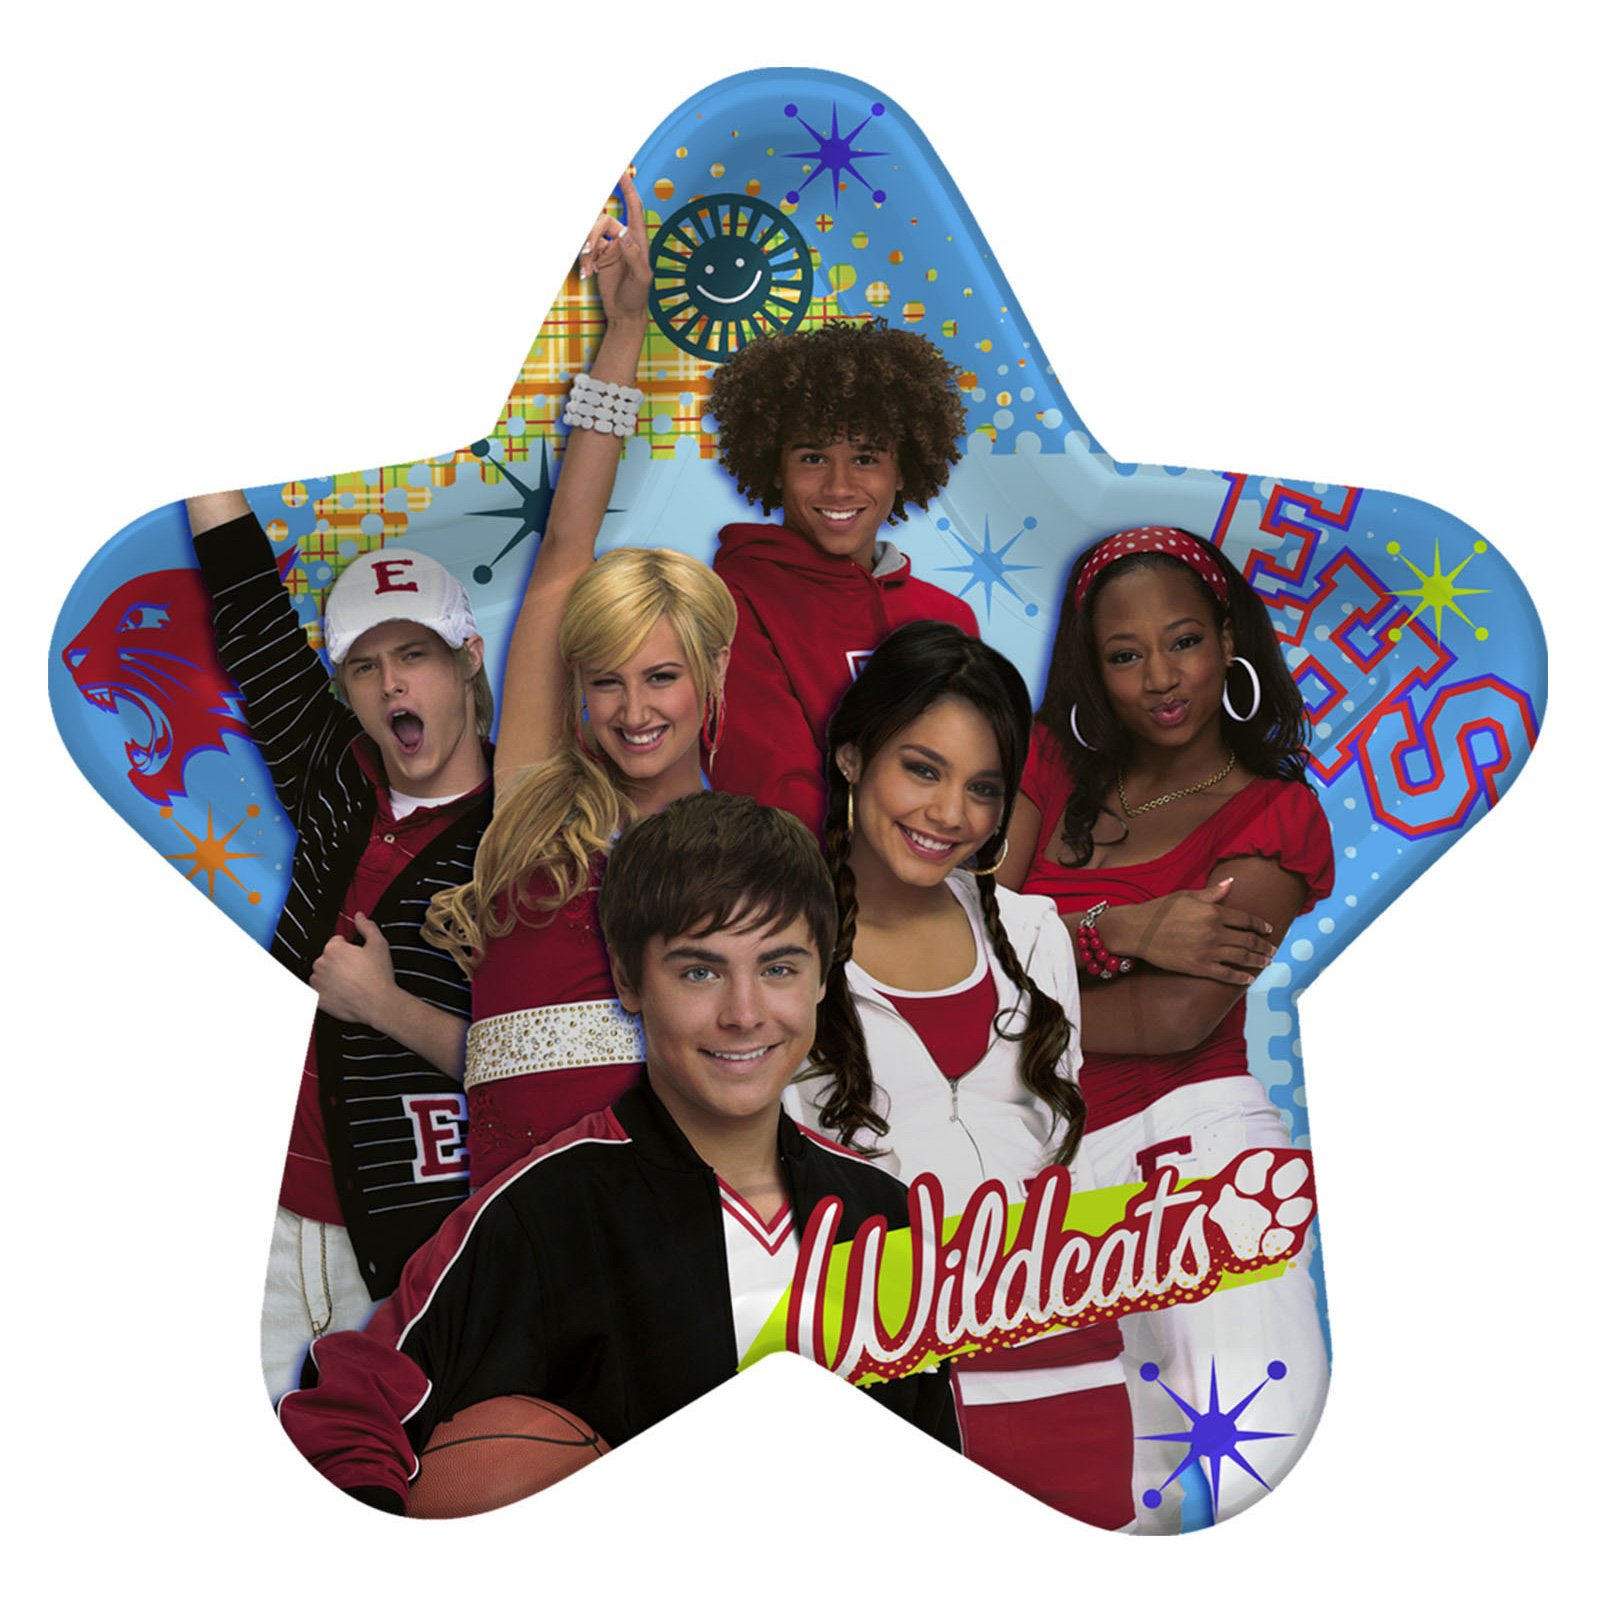 High School Musical 2 Large Star Shaped Paper Plates (8ct)  sc 1 st  Walmart & High School Musical 2 Large Star Shaped Paper Plates (8ct) - Walmart.com